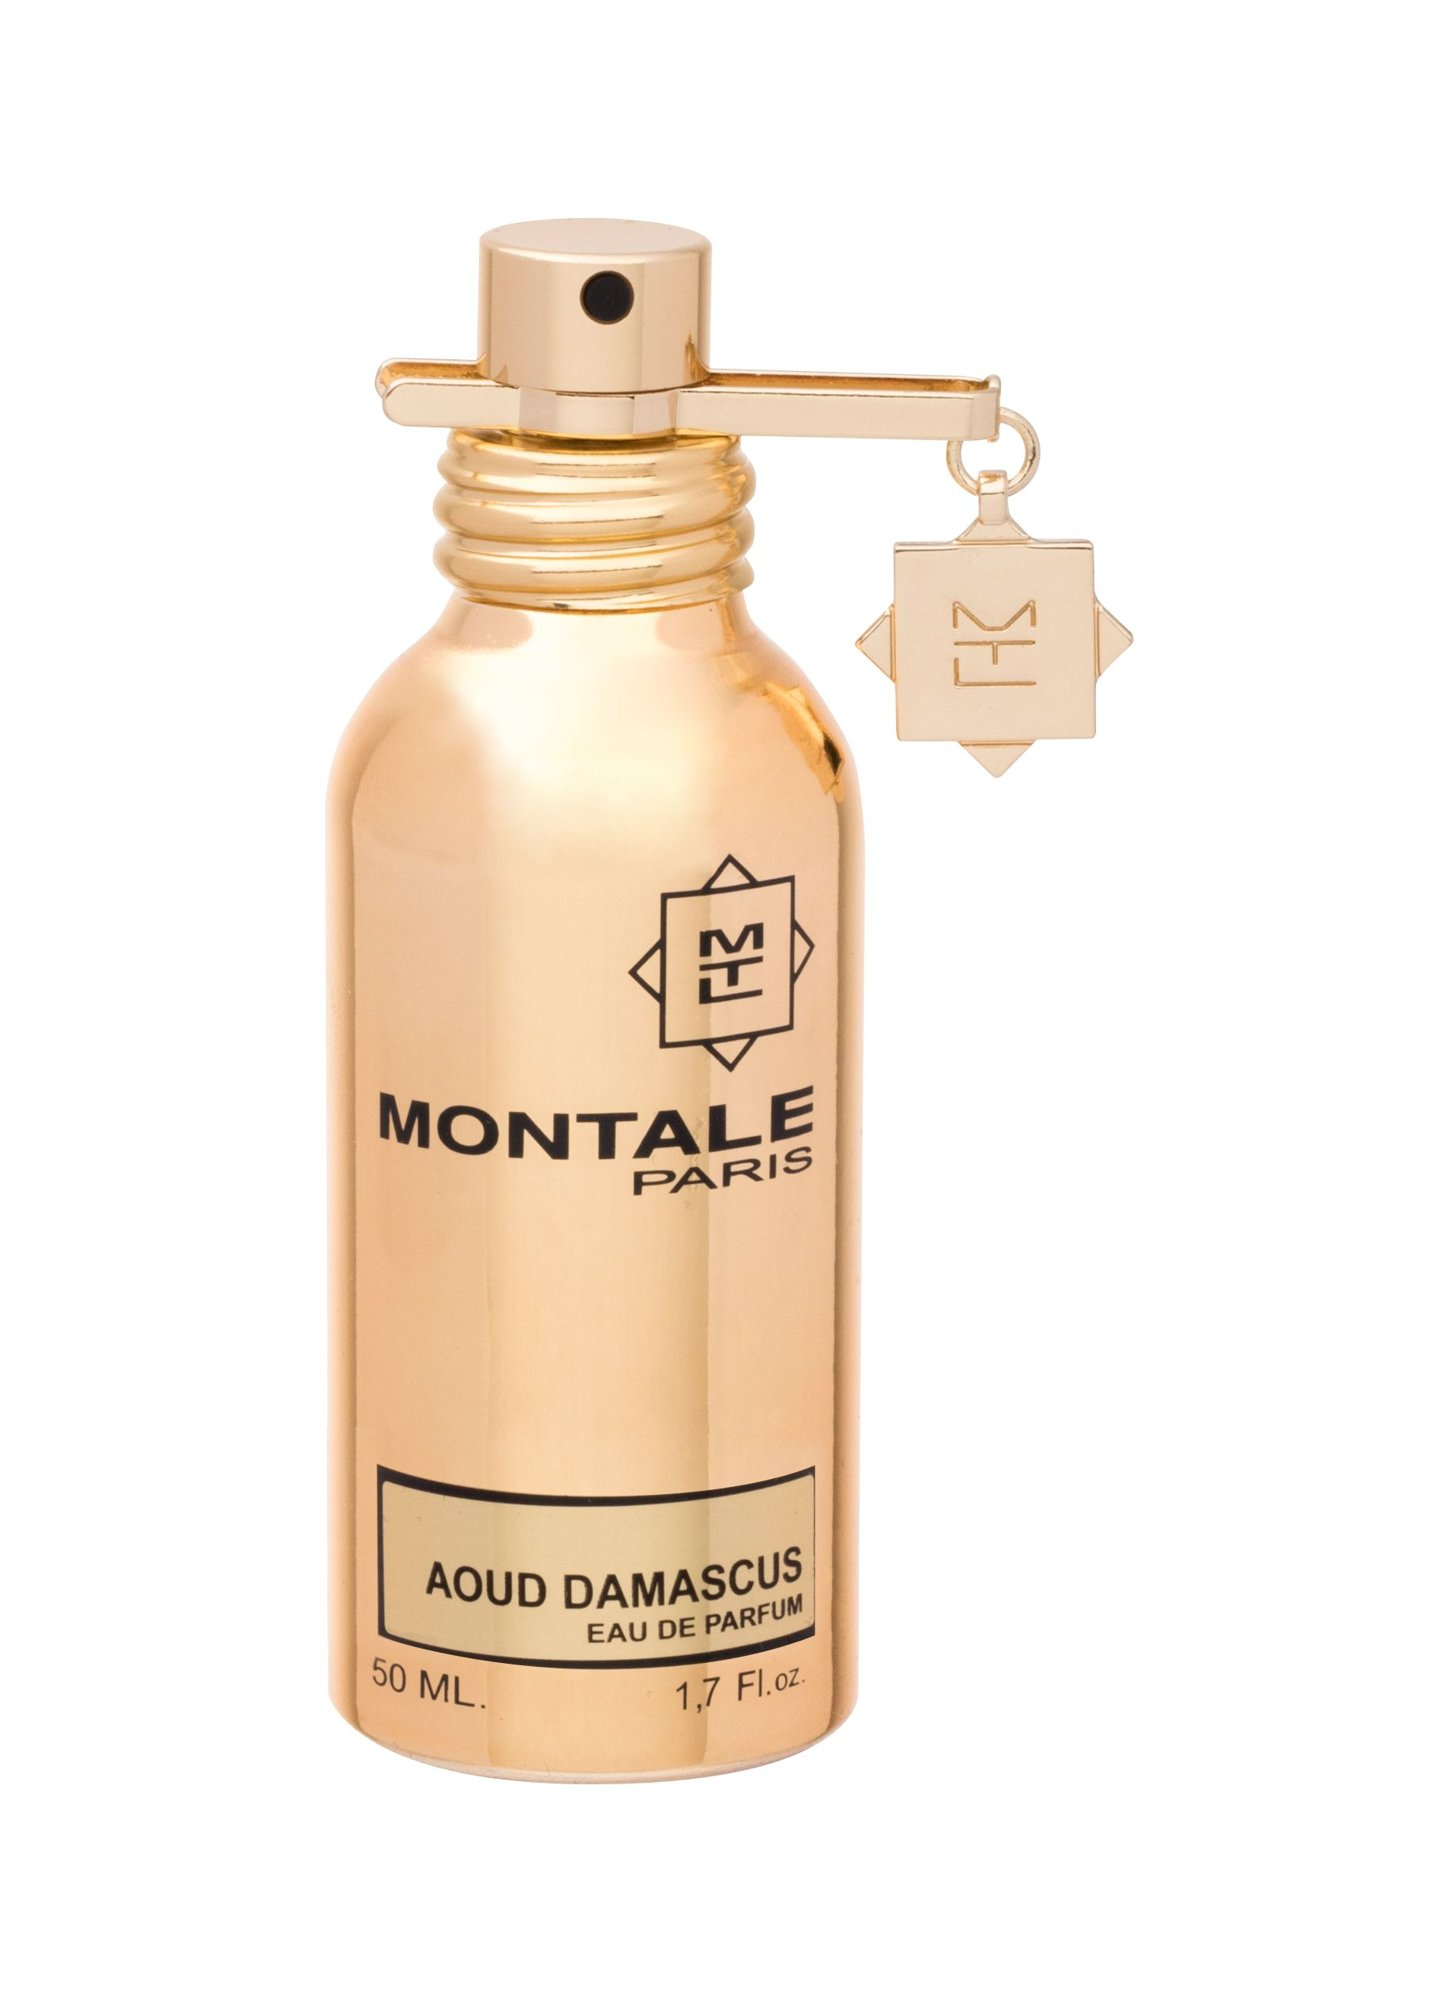 Montale Paris Aoud Damascus EDP 50ml